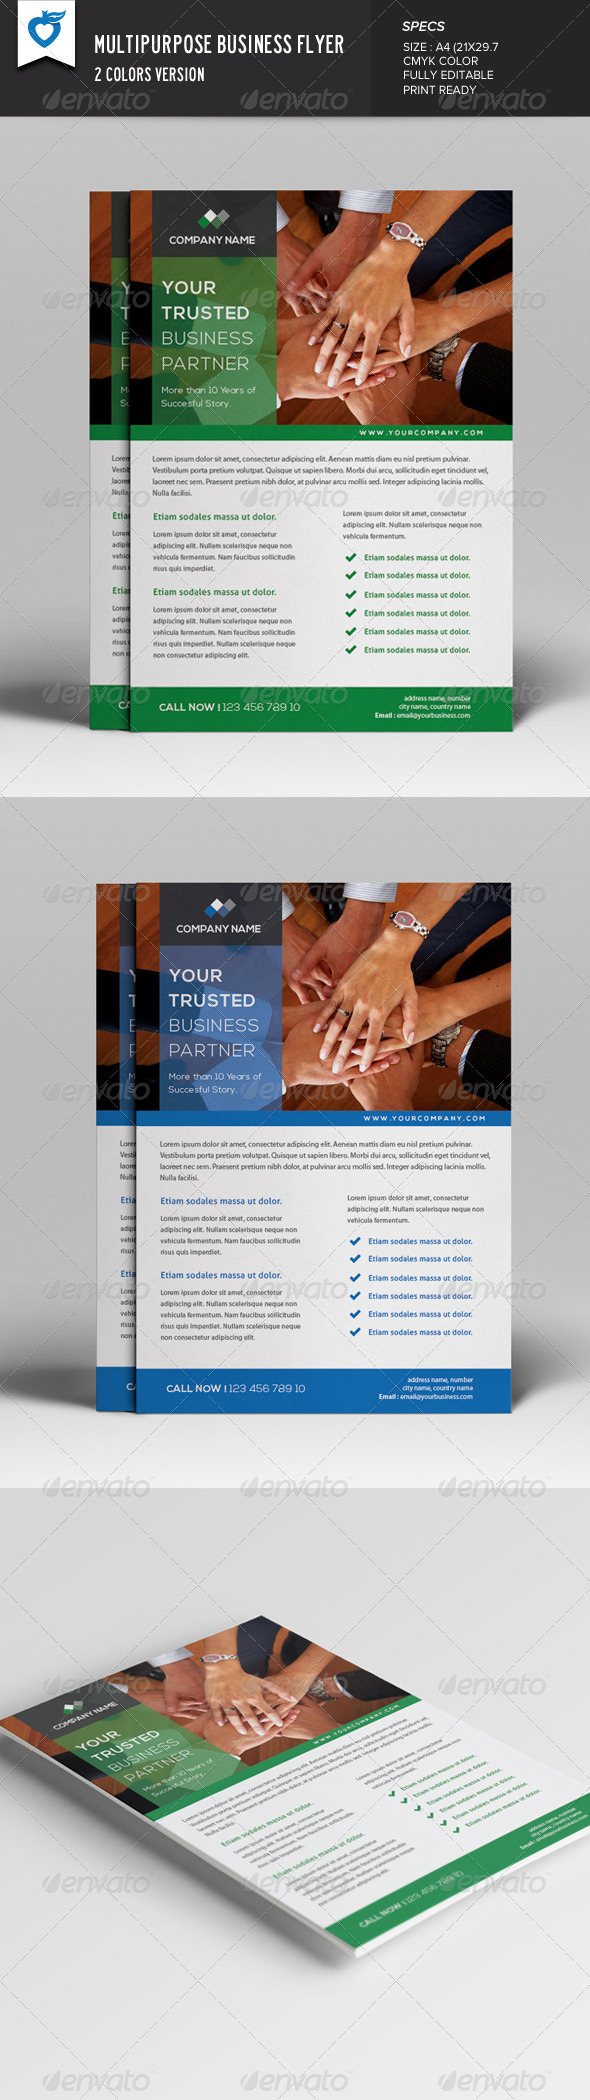 GraphicRiver Multipurpose Business Flyer 7645632